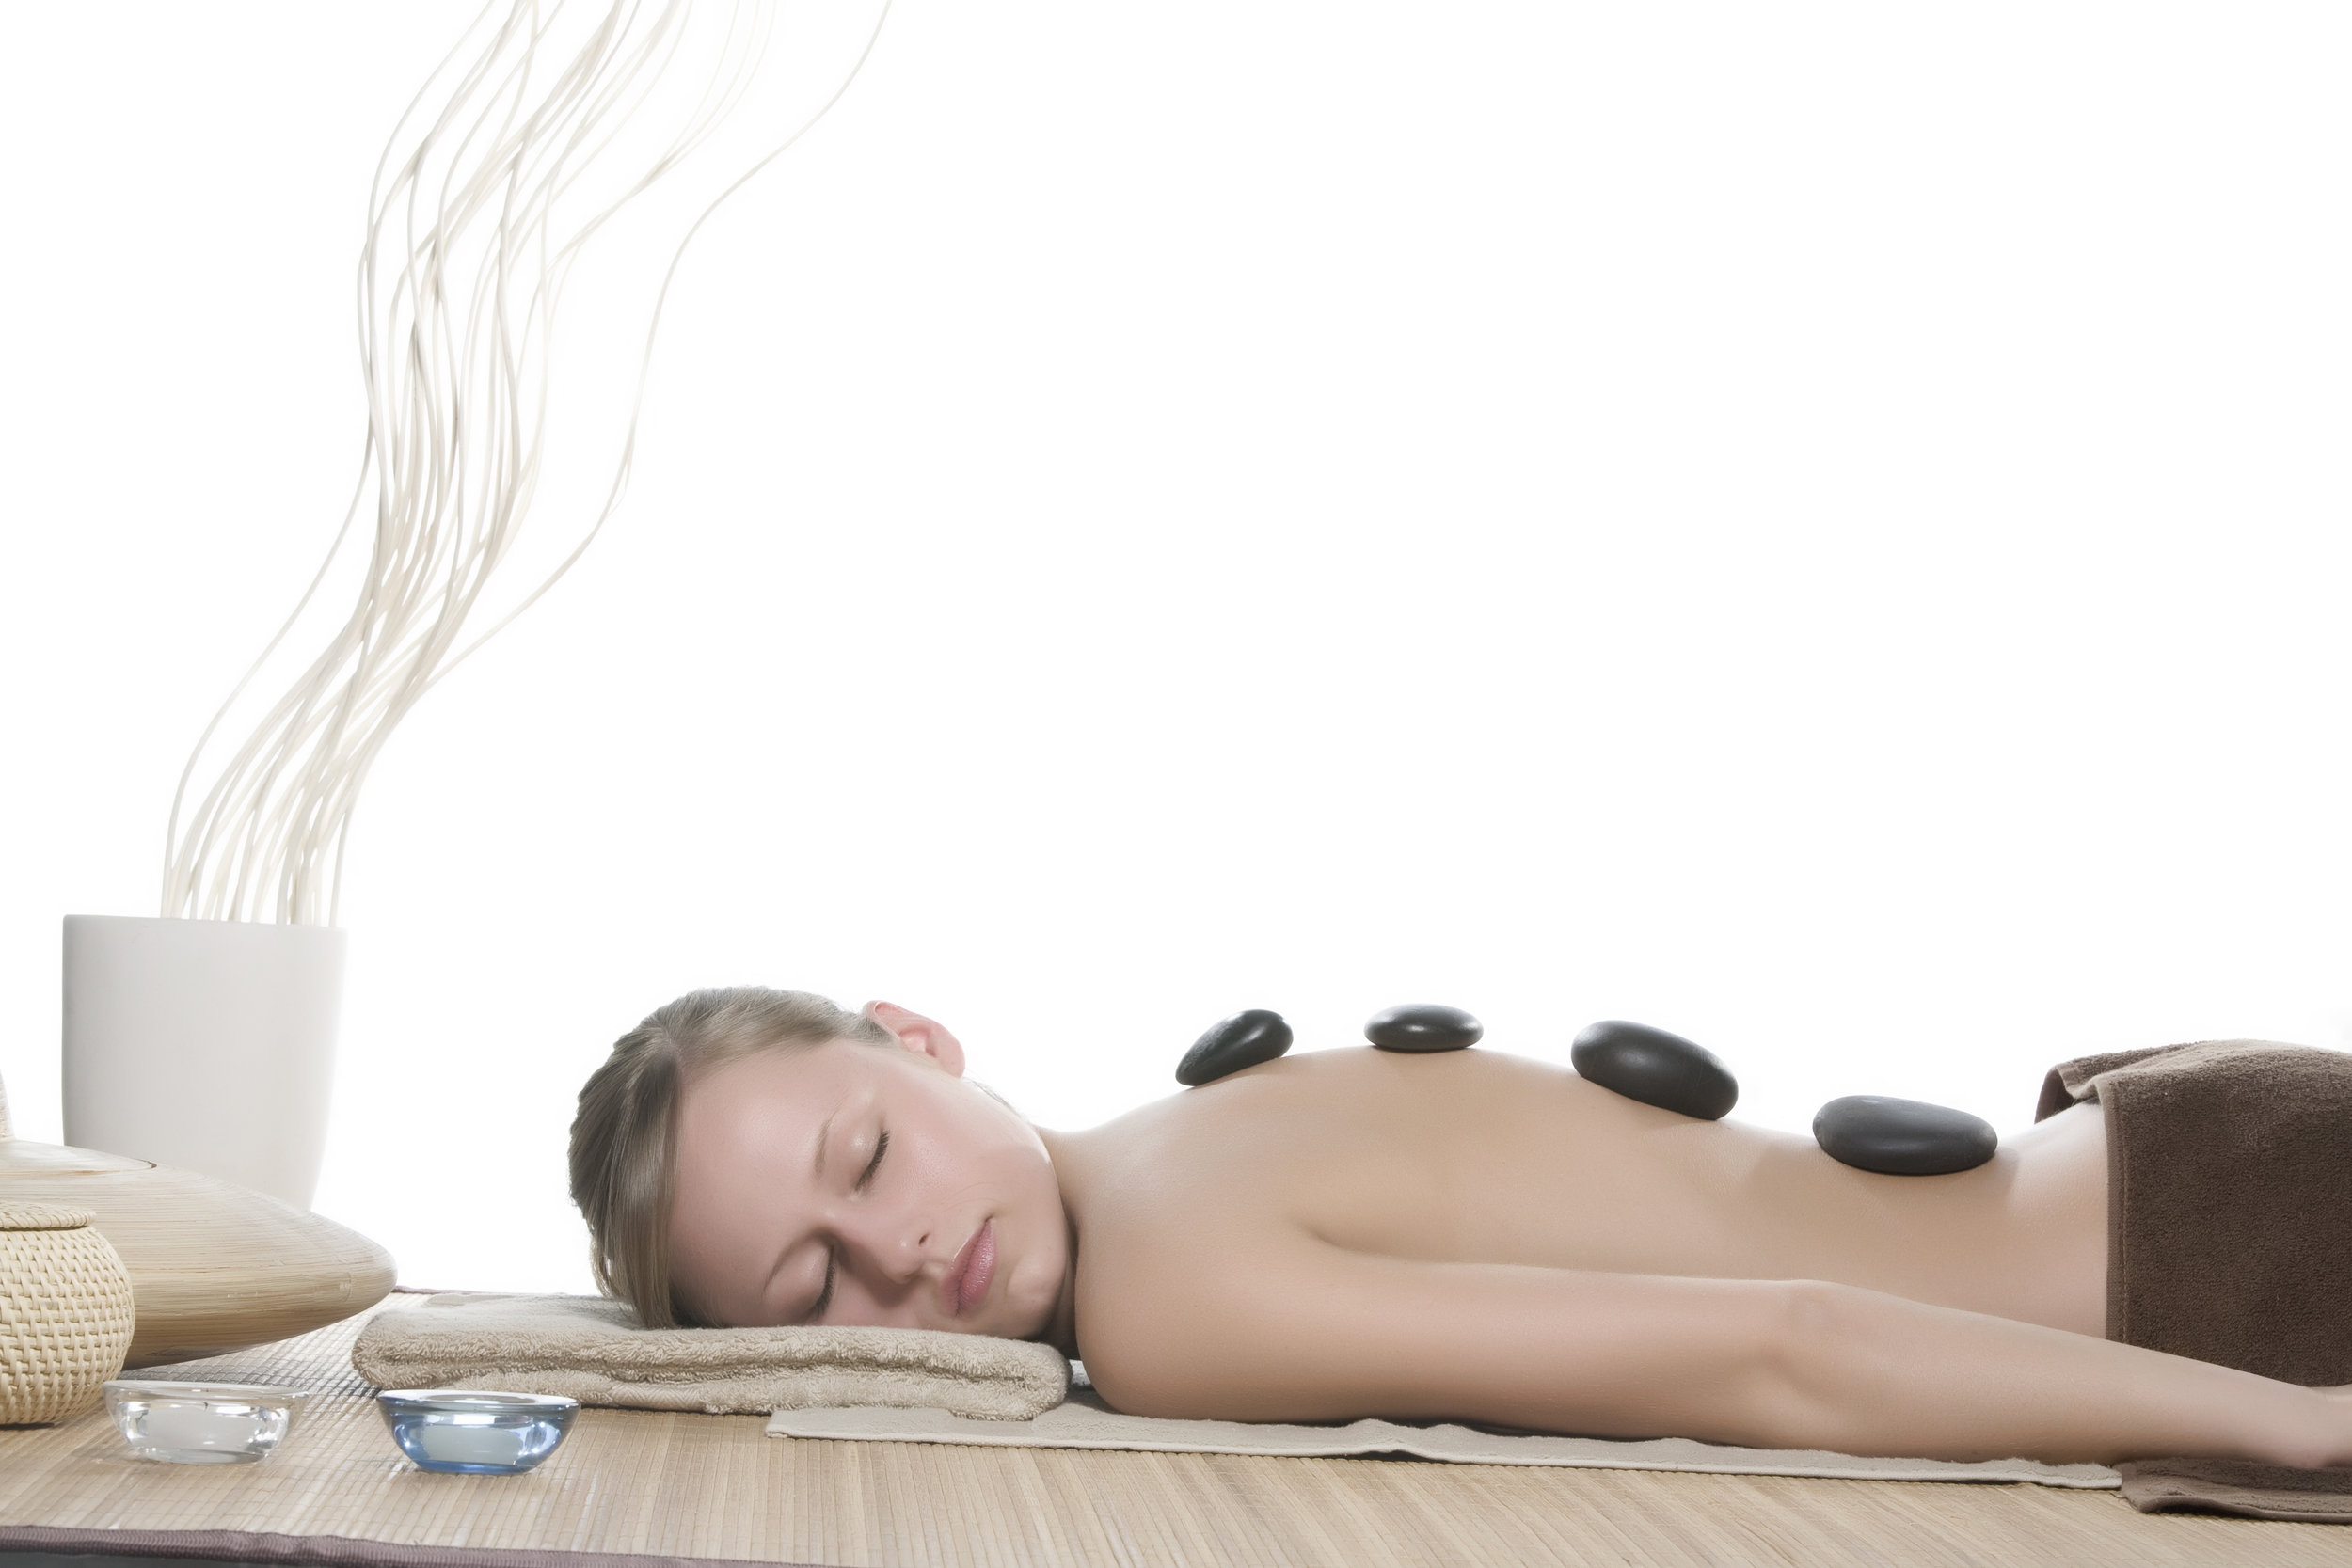 Treat Someone you Love! - TO HAPPINESS GREAT HEALTH AND RELAXATION WITH A GIFT CERTIFICATE